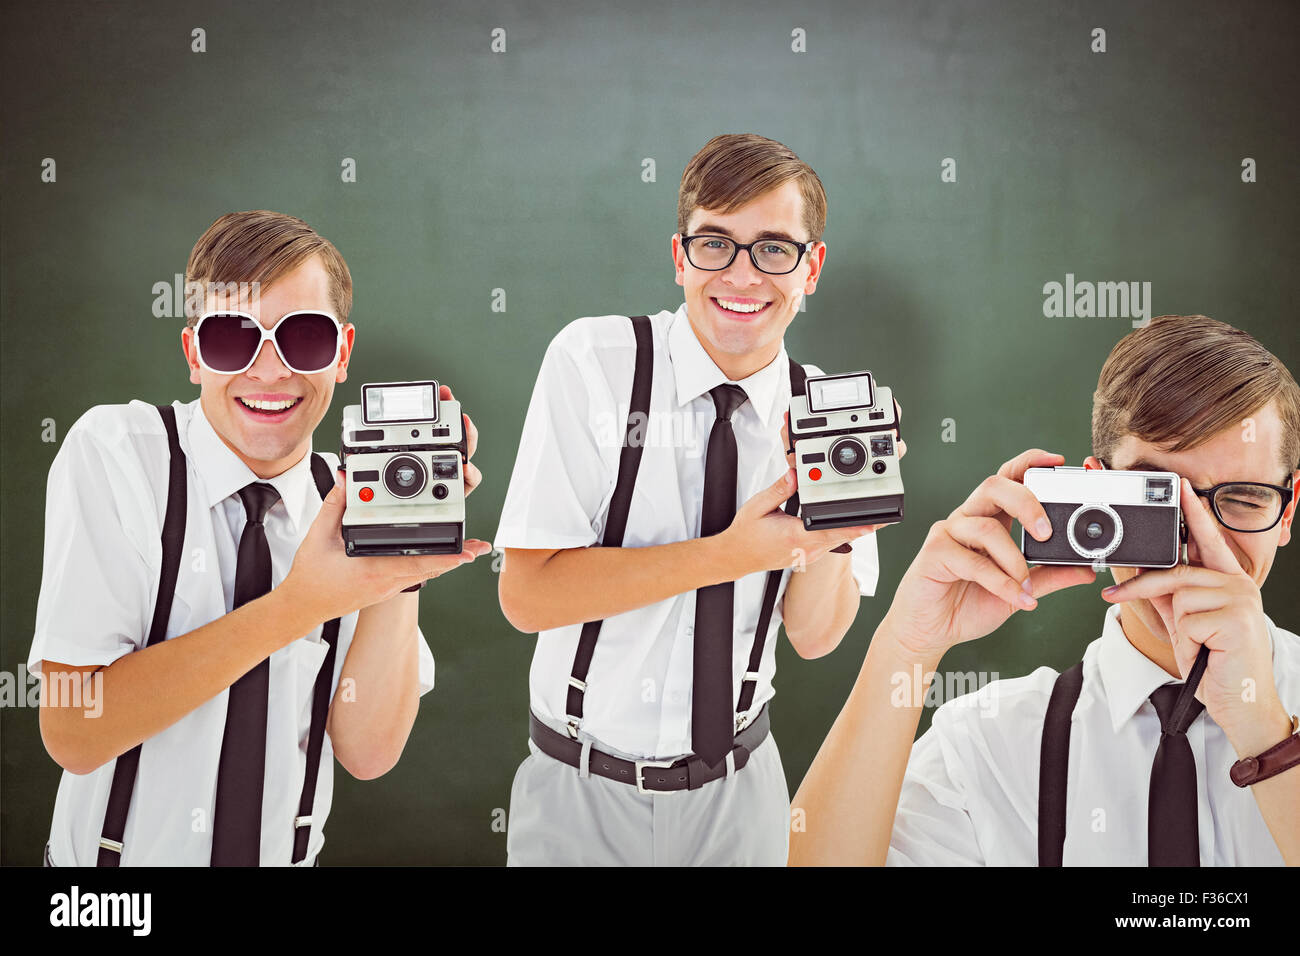 Composite image of geek with camera - Stock Image